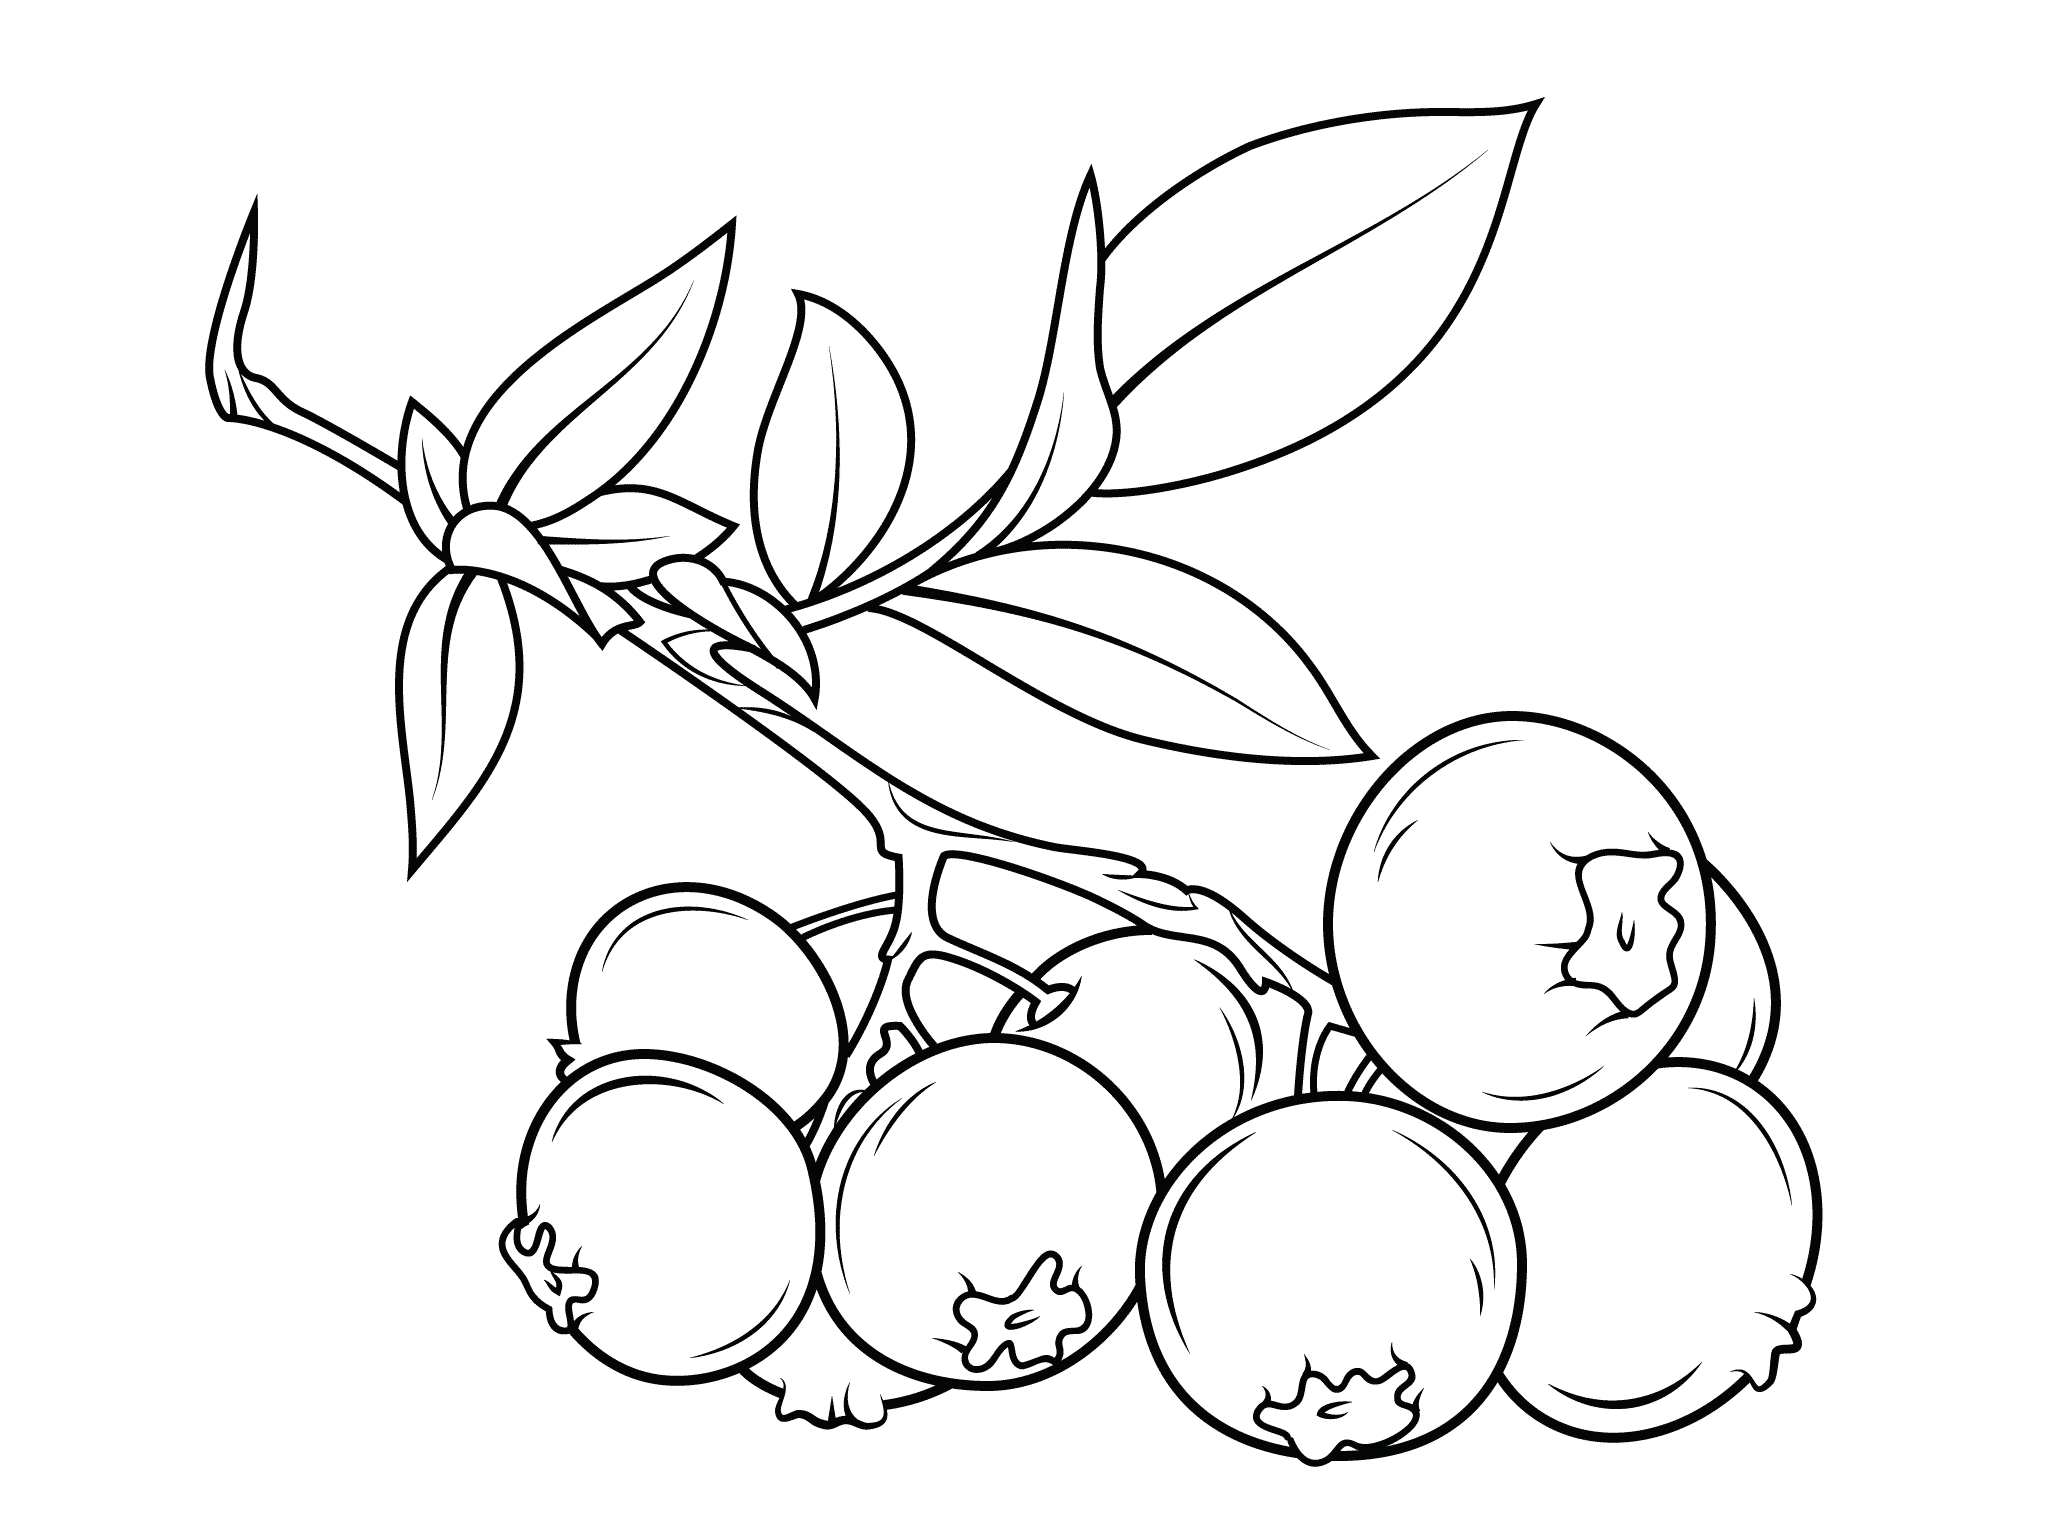 cranberry coloring pages kids - photo#19